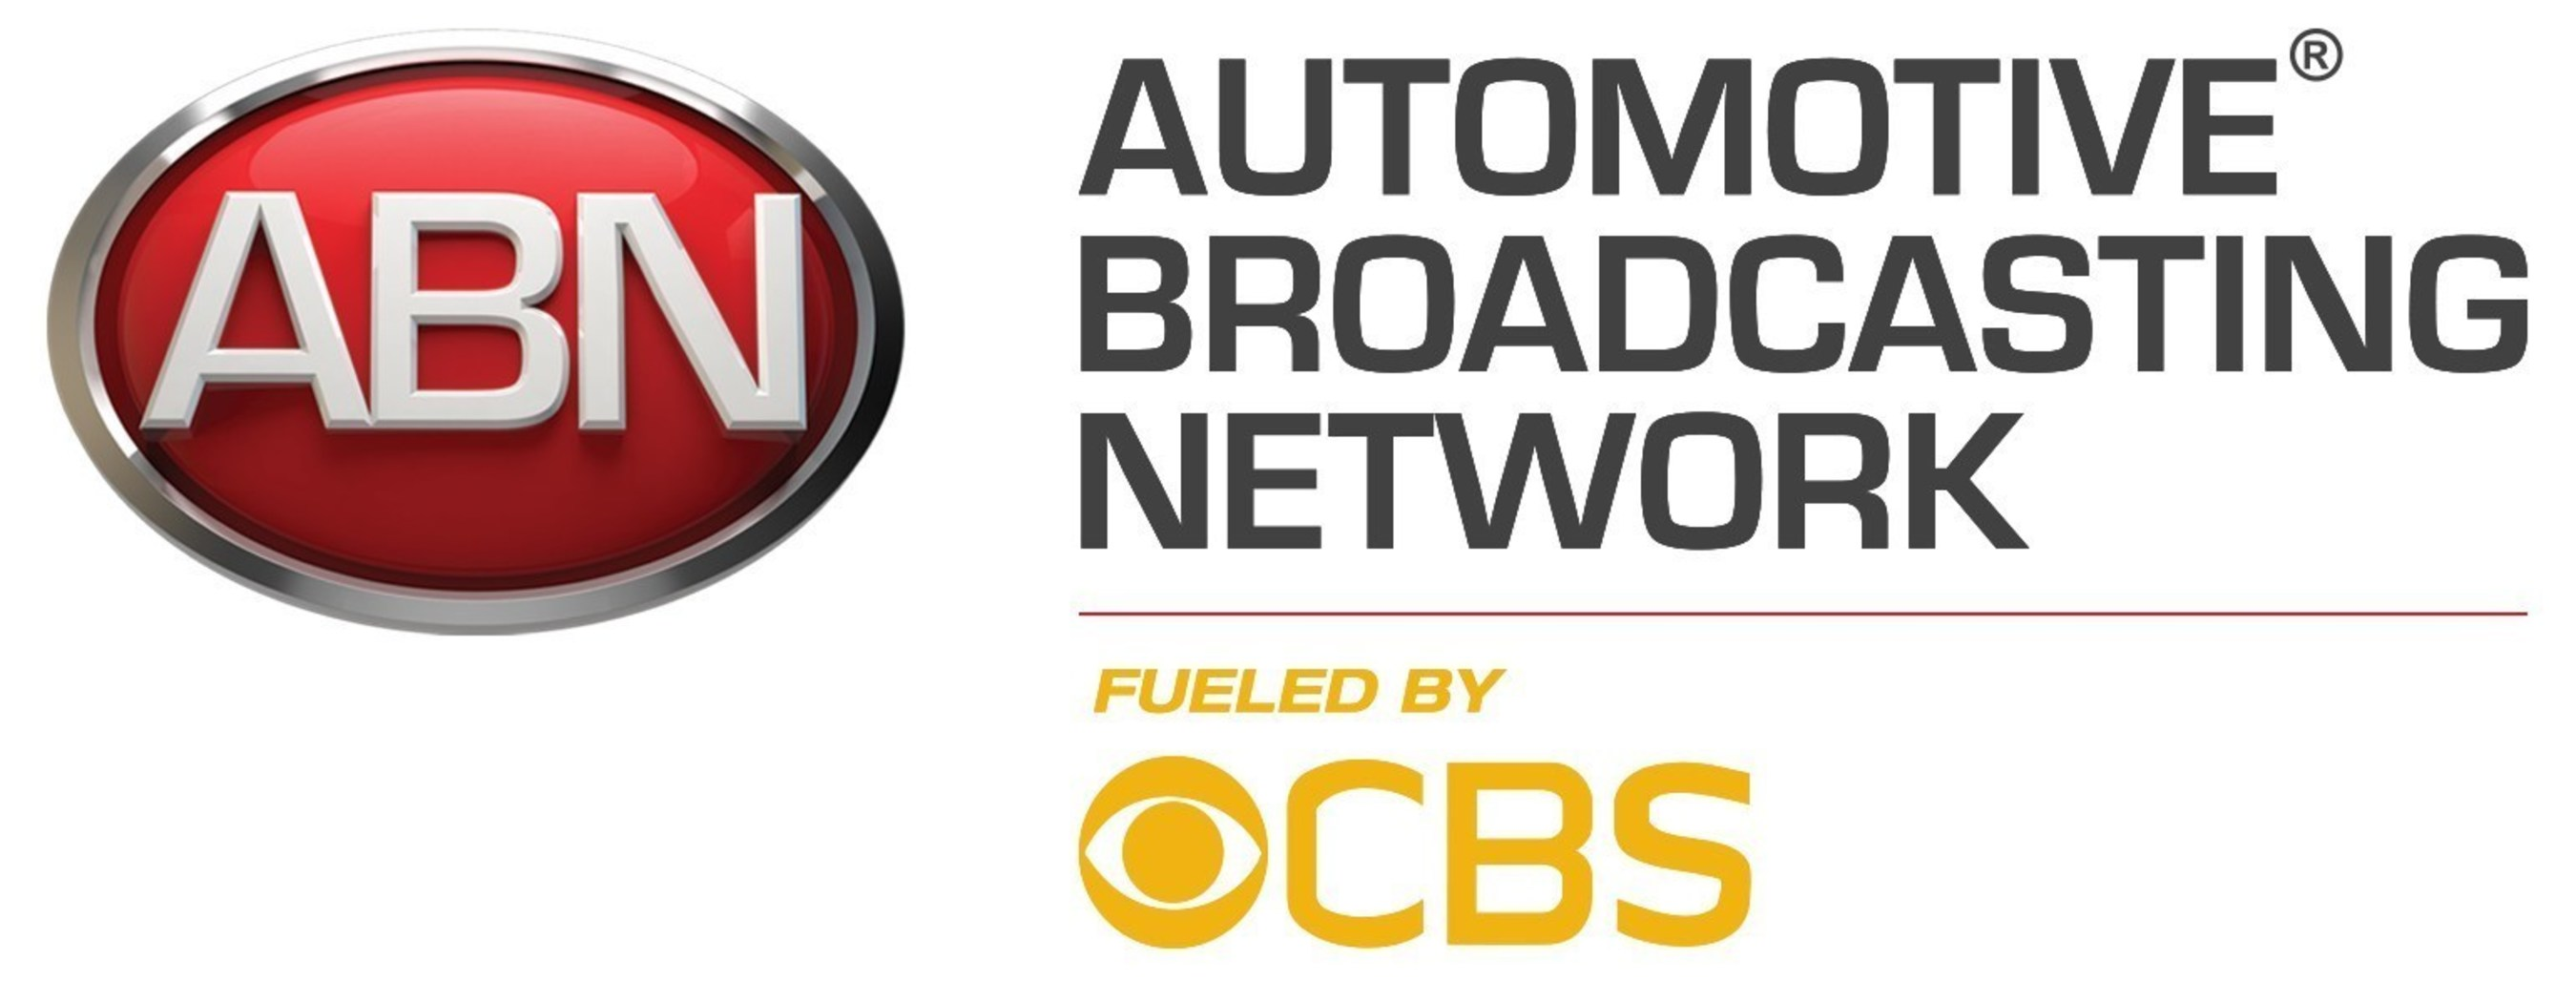 Automotive Broadcasting Network